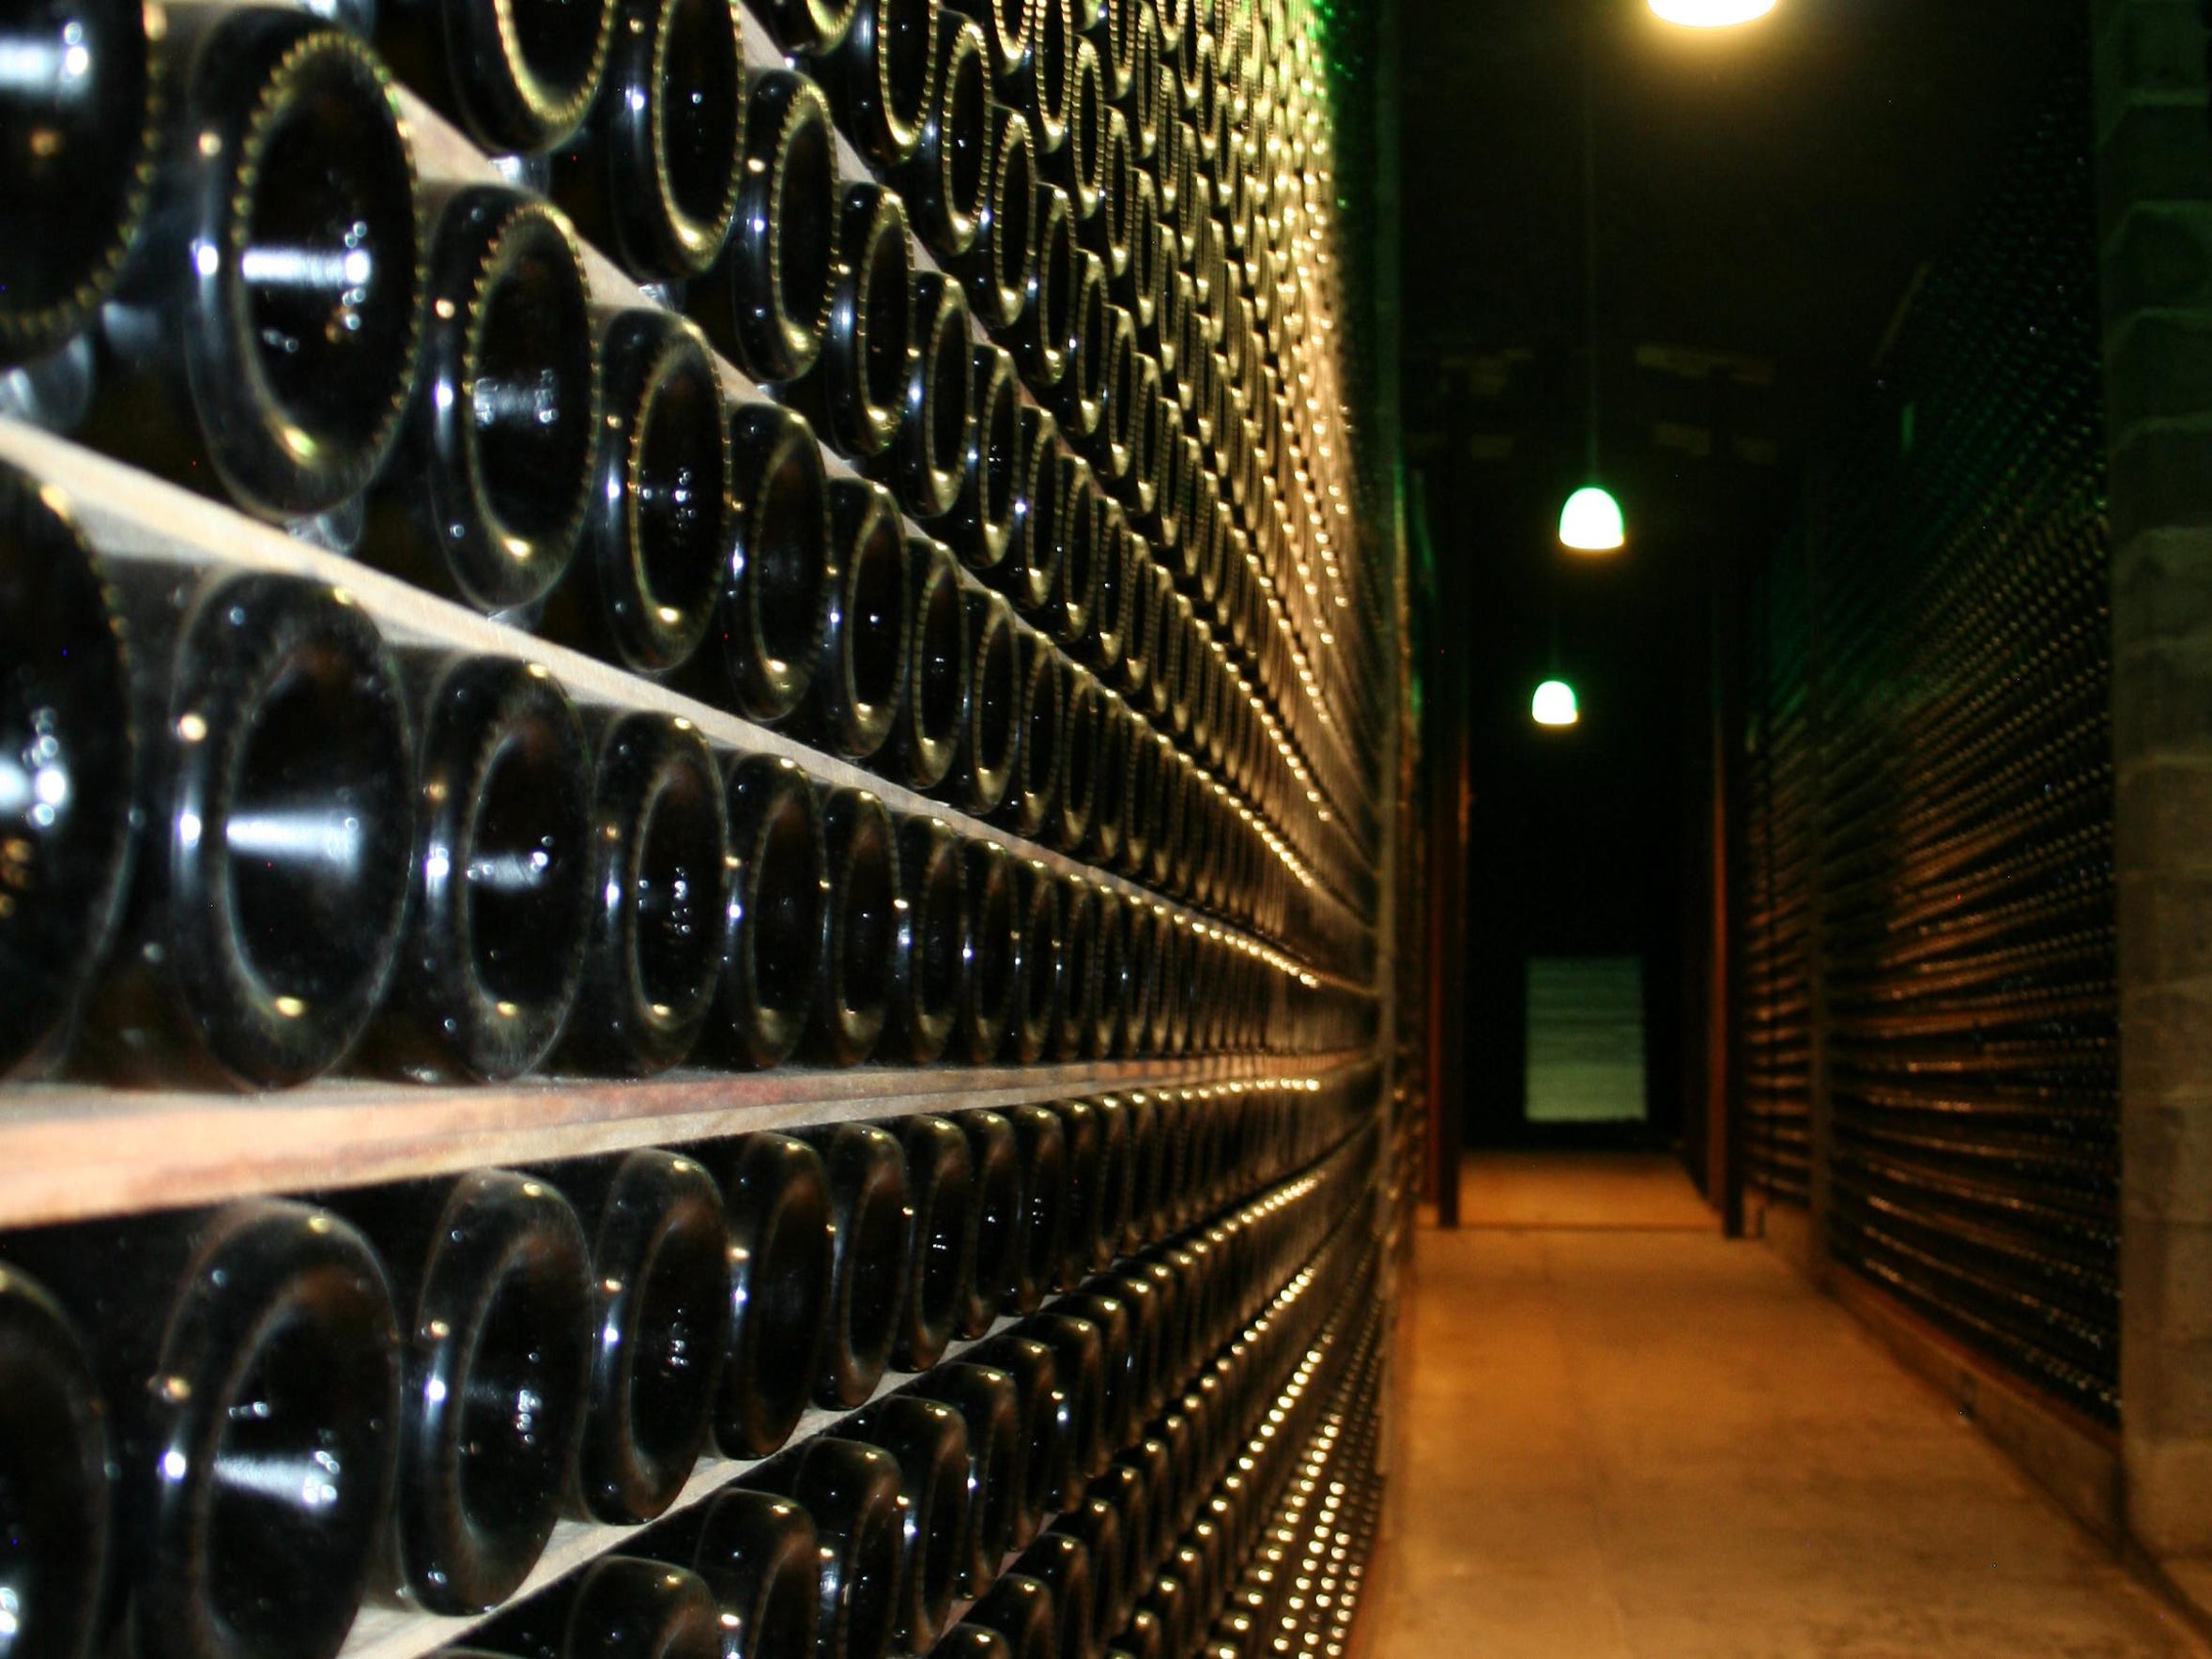 The caves at Schramsberg Vineyards in the northern